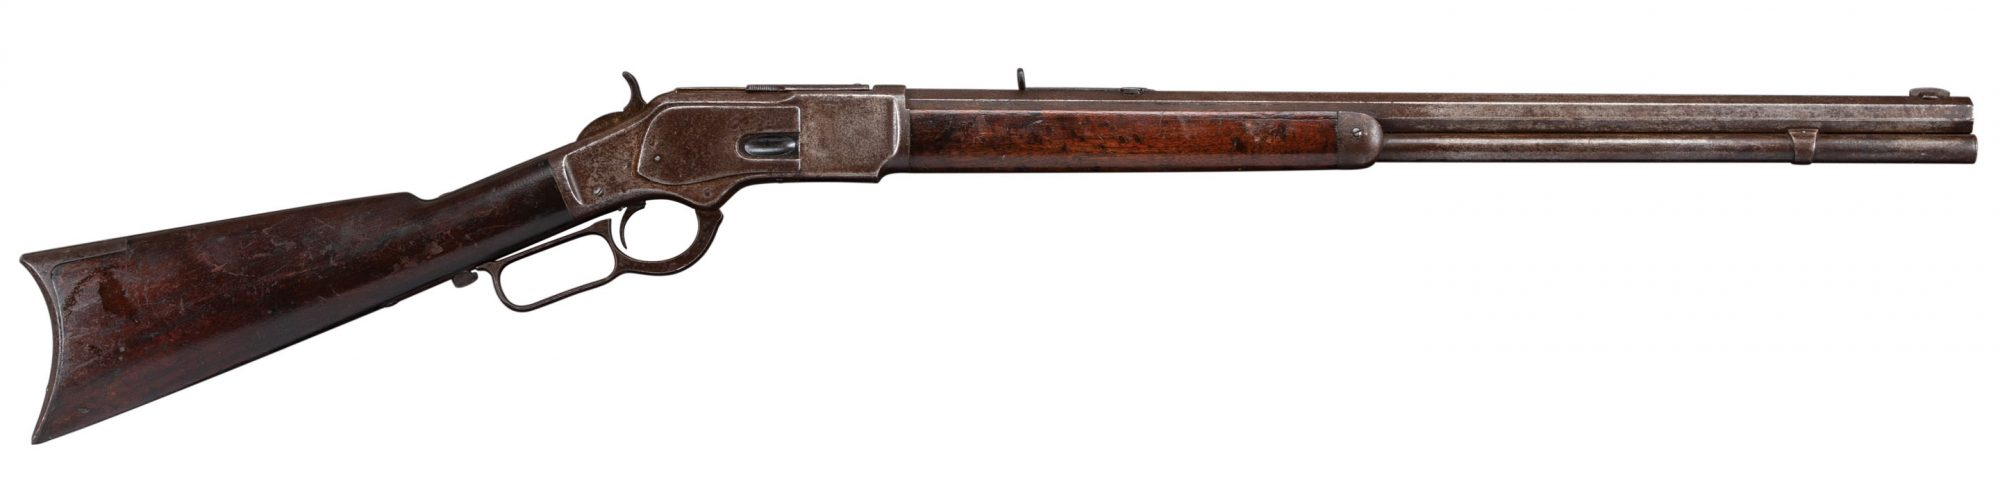 Photo of a Winchester 1873, before restoration work by Turnbull Restoration of Bloomfield, NY